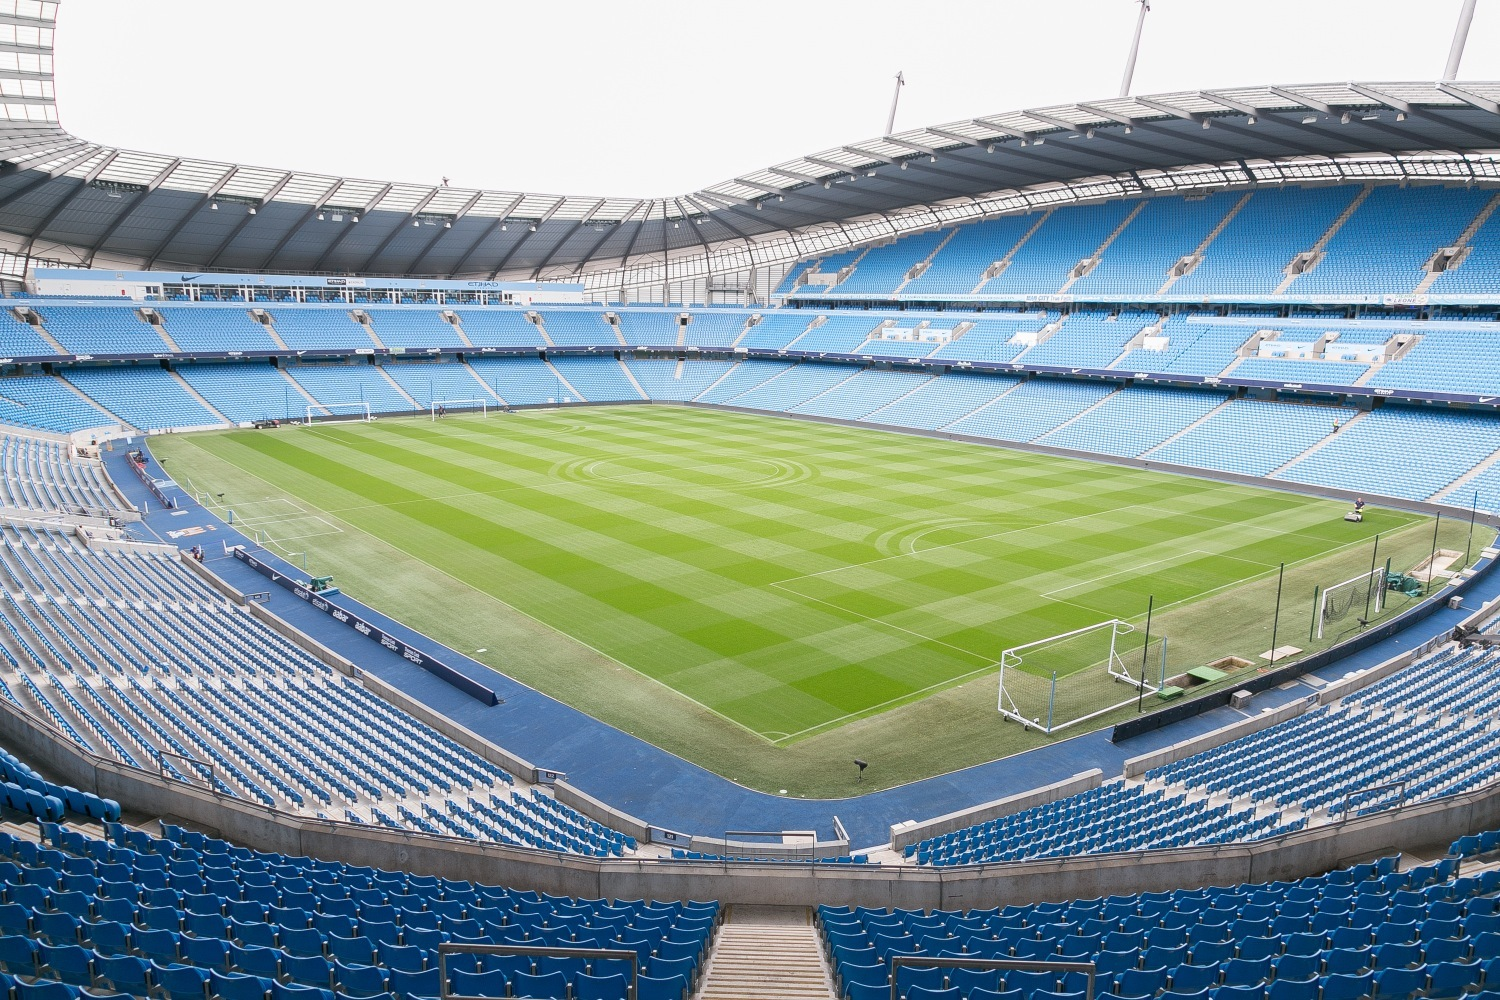 etihad stadium - photo #14